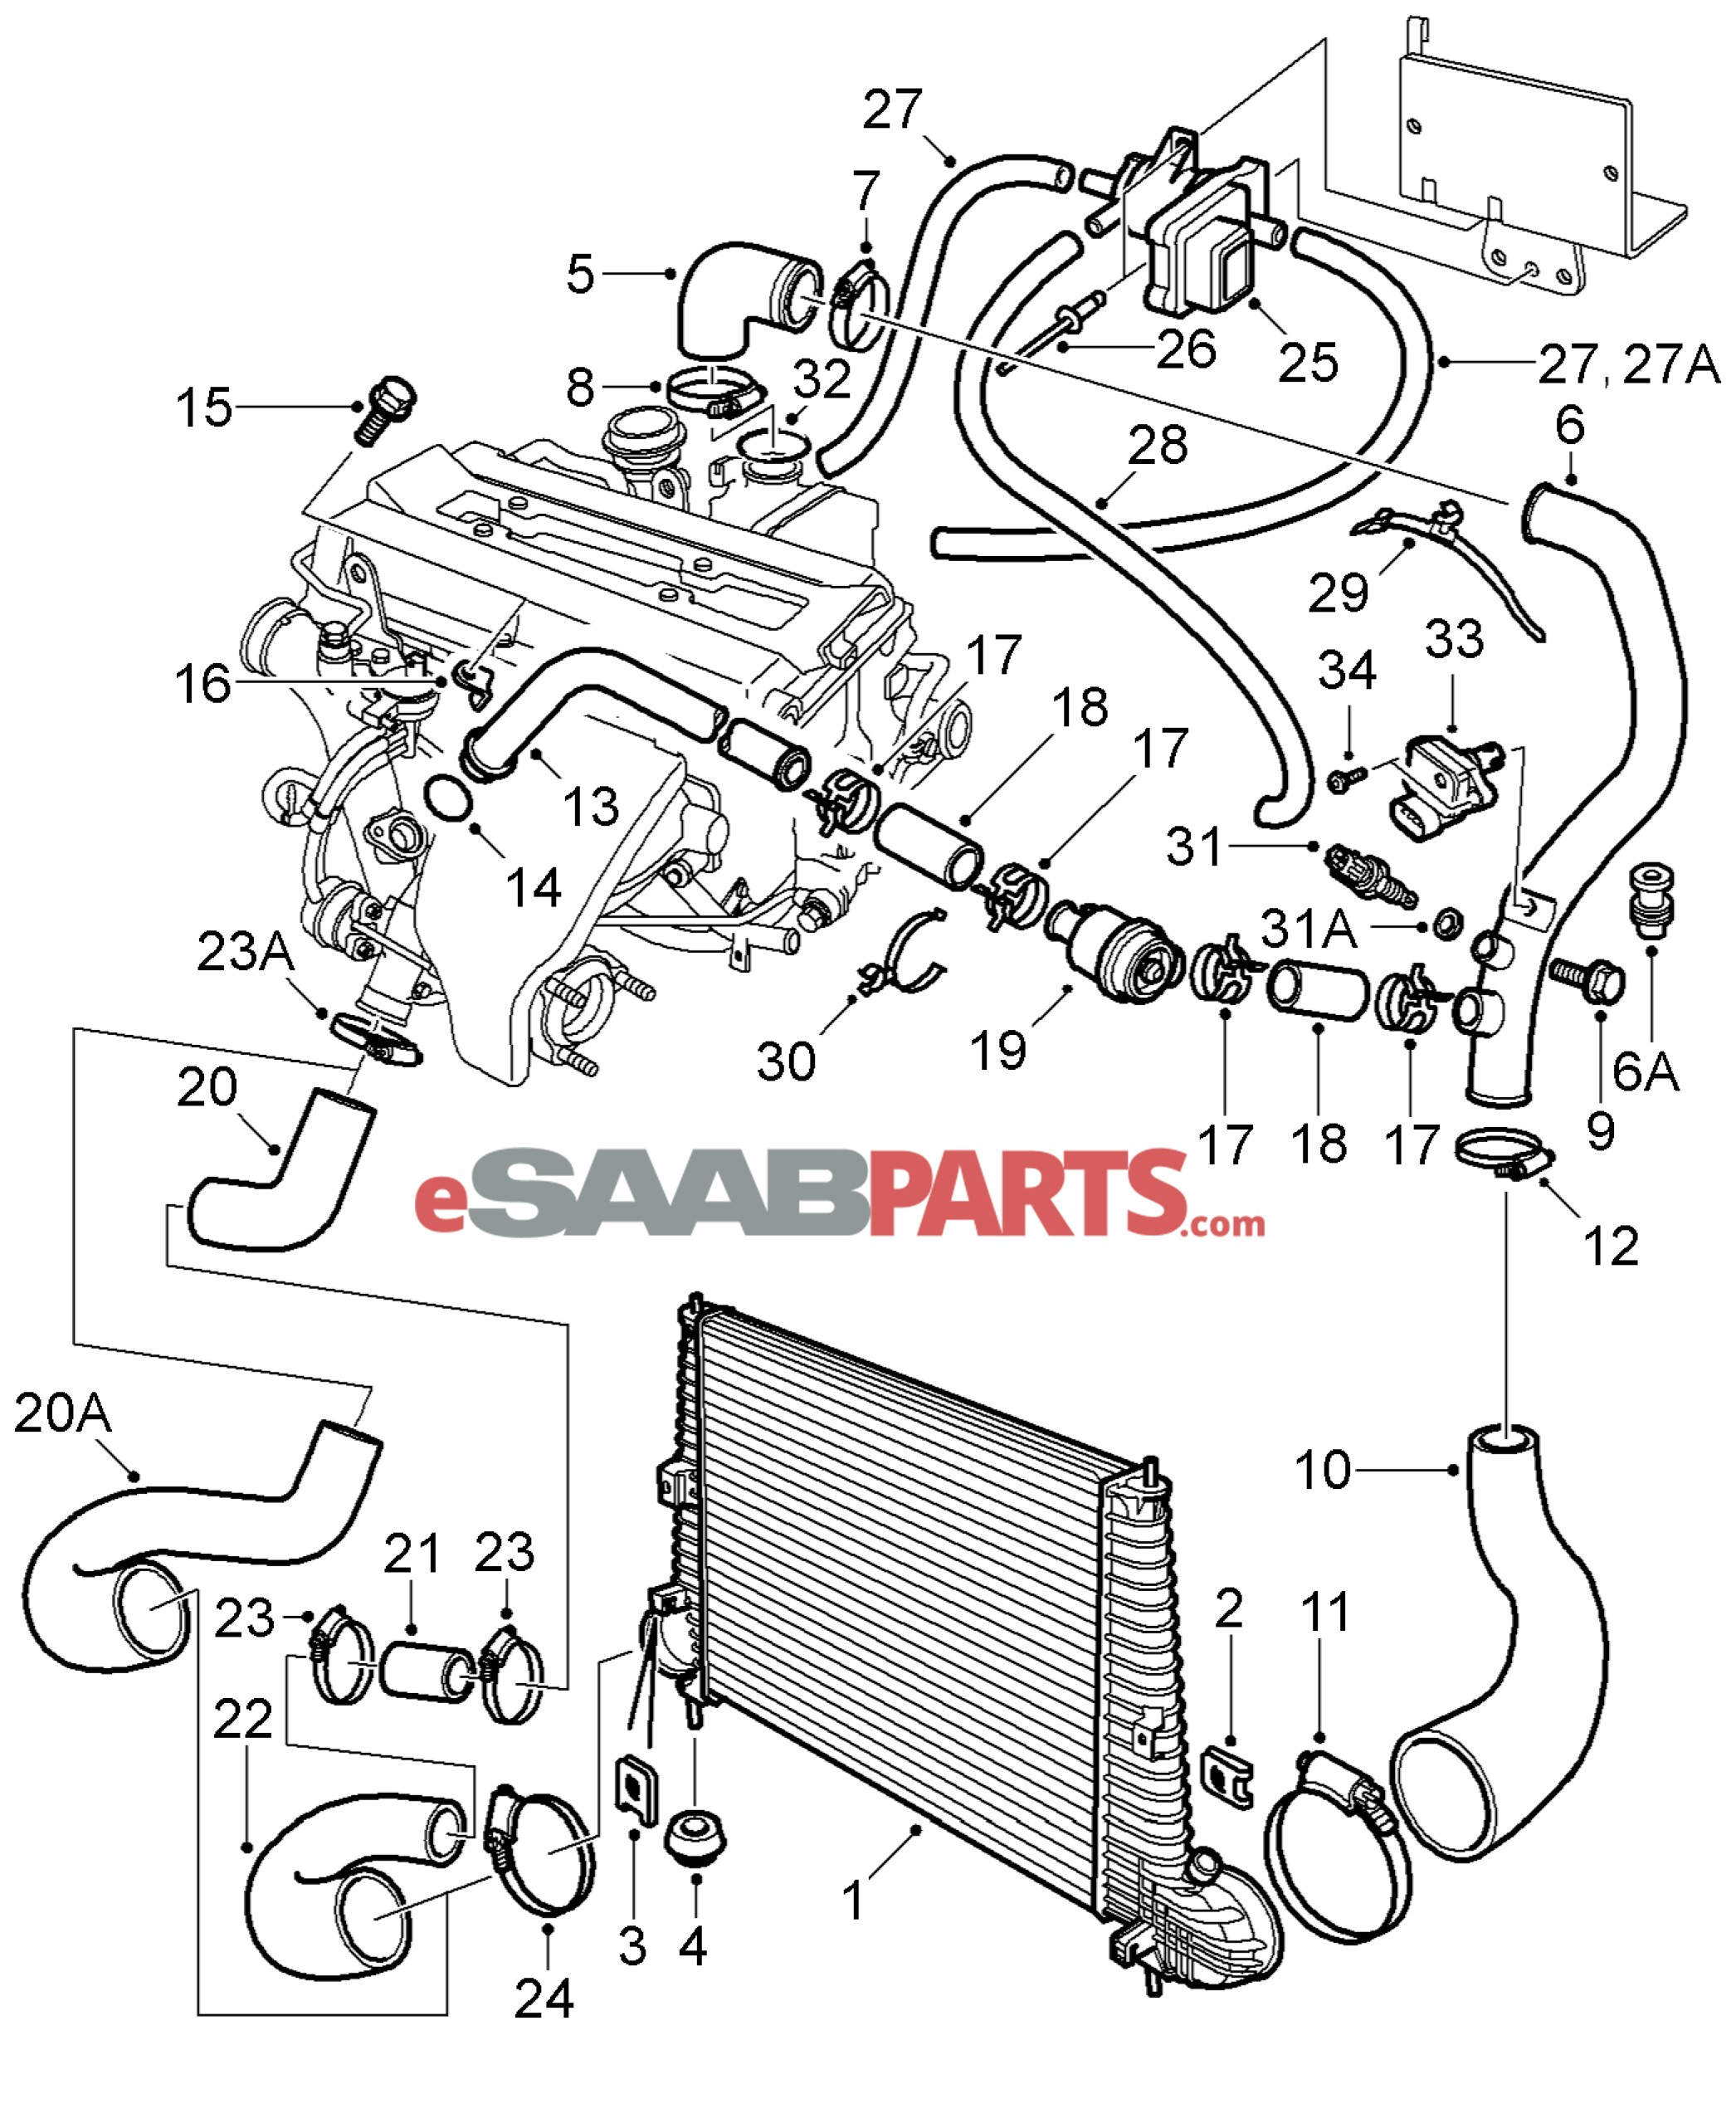 Johnson 9 5 Wiring Diagram Download Diagrams Motor 25 Hp Pull Start Rh Scoala Co Schematics For